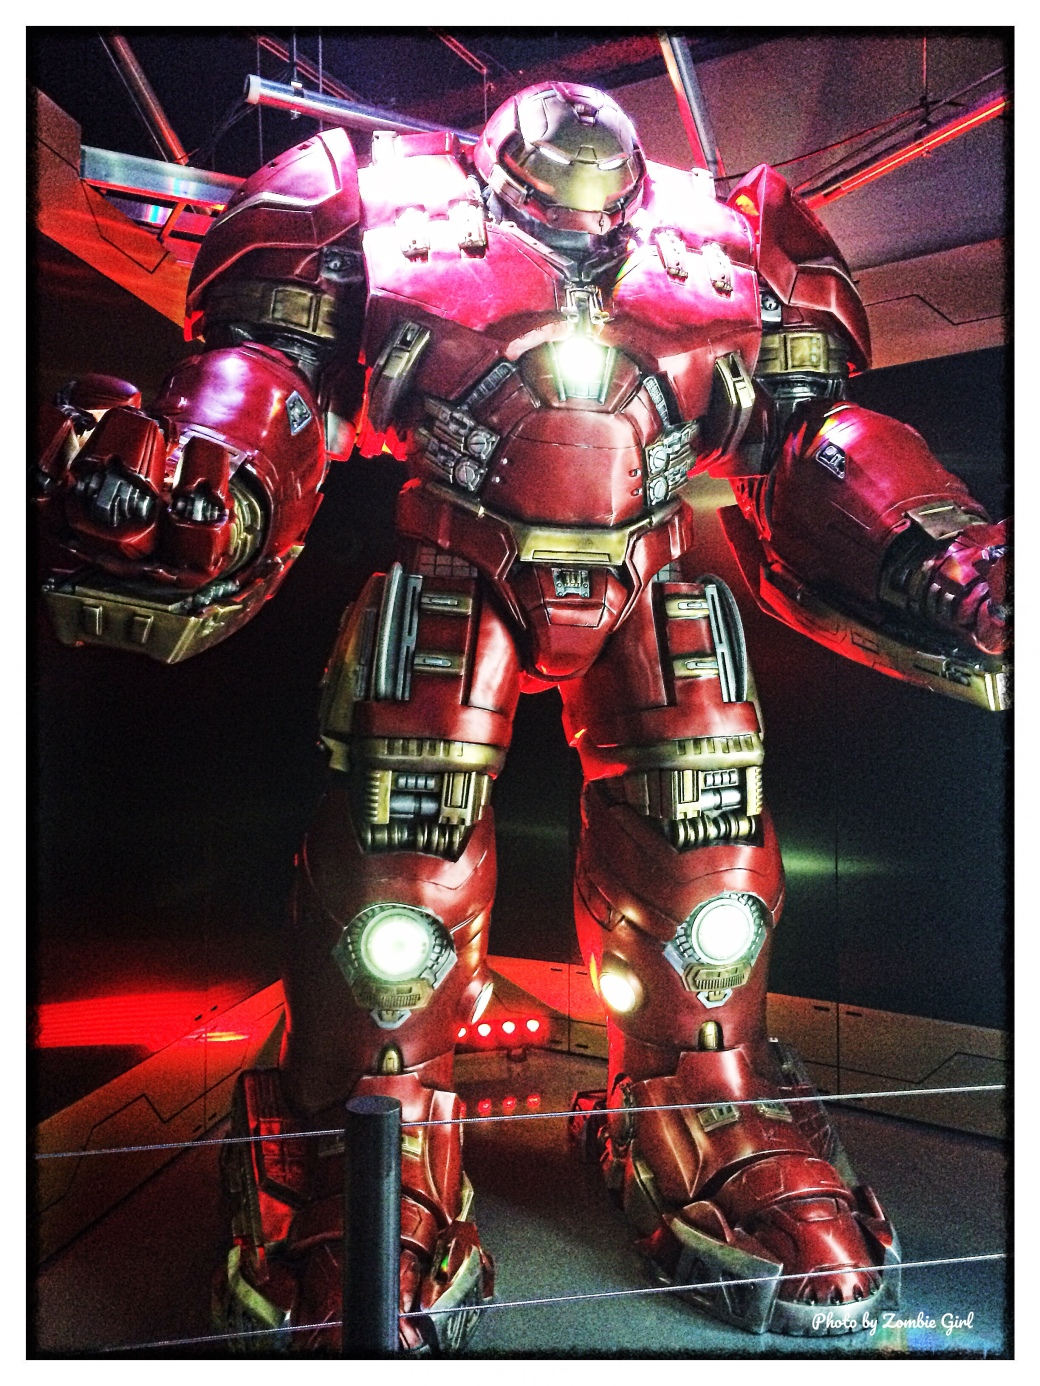 The Hulkbuster suit in Vegas